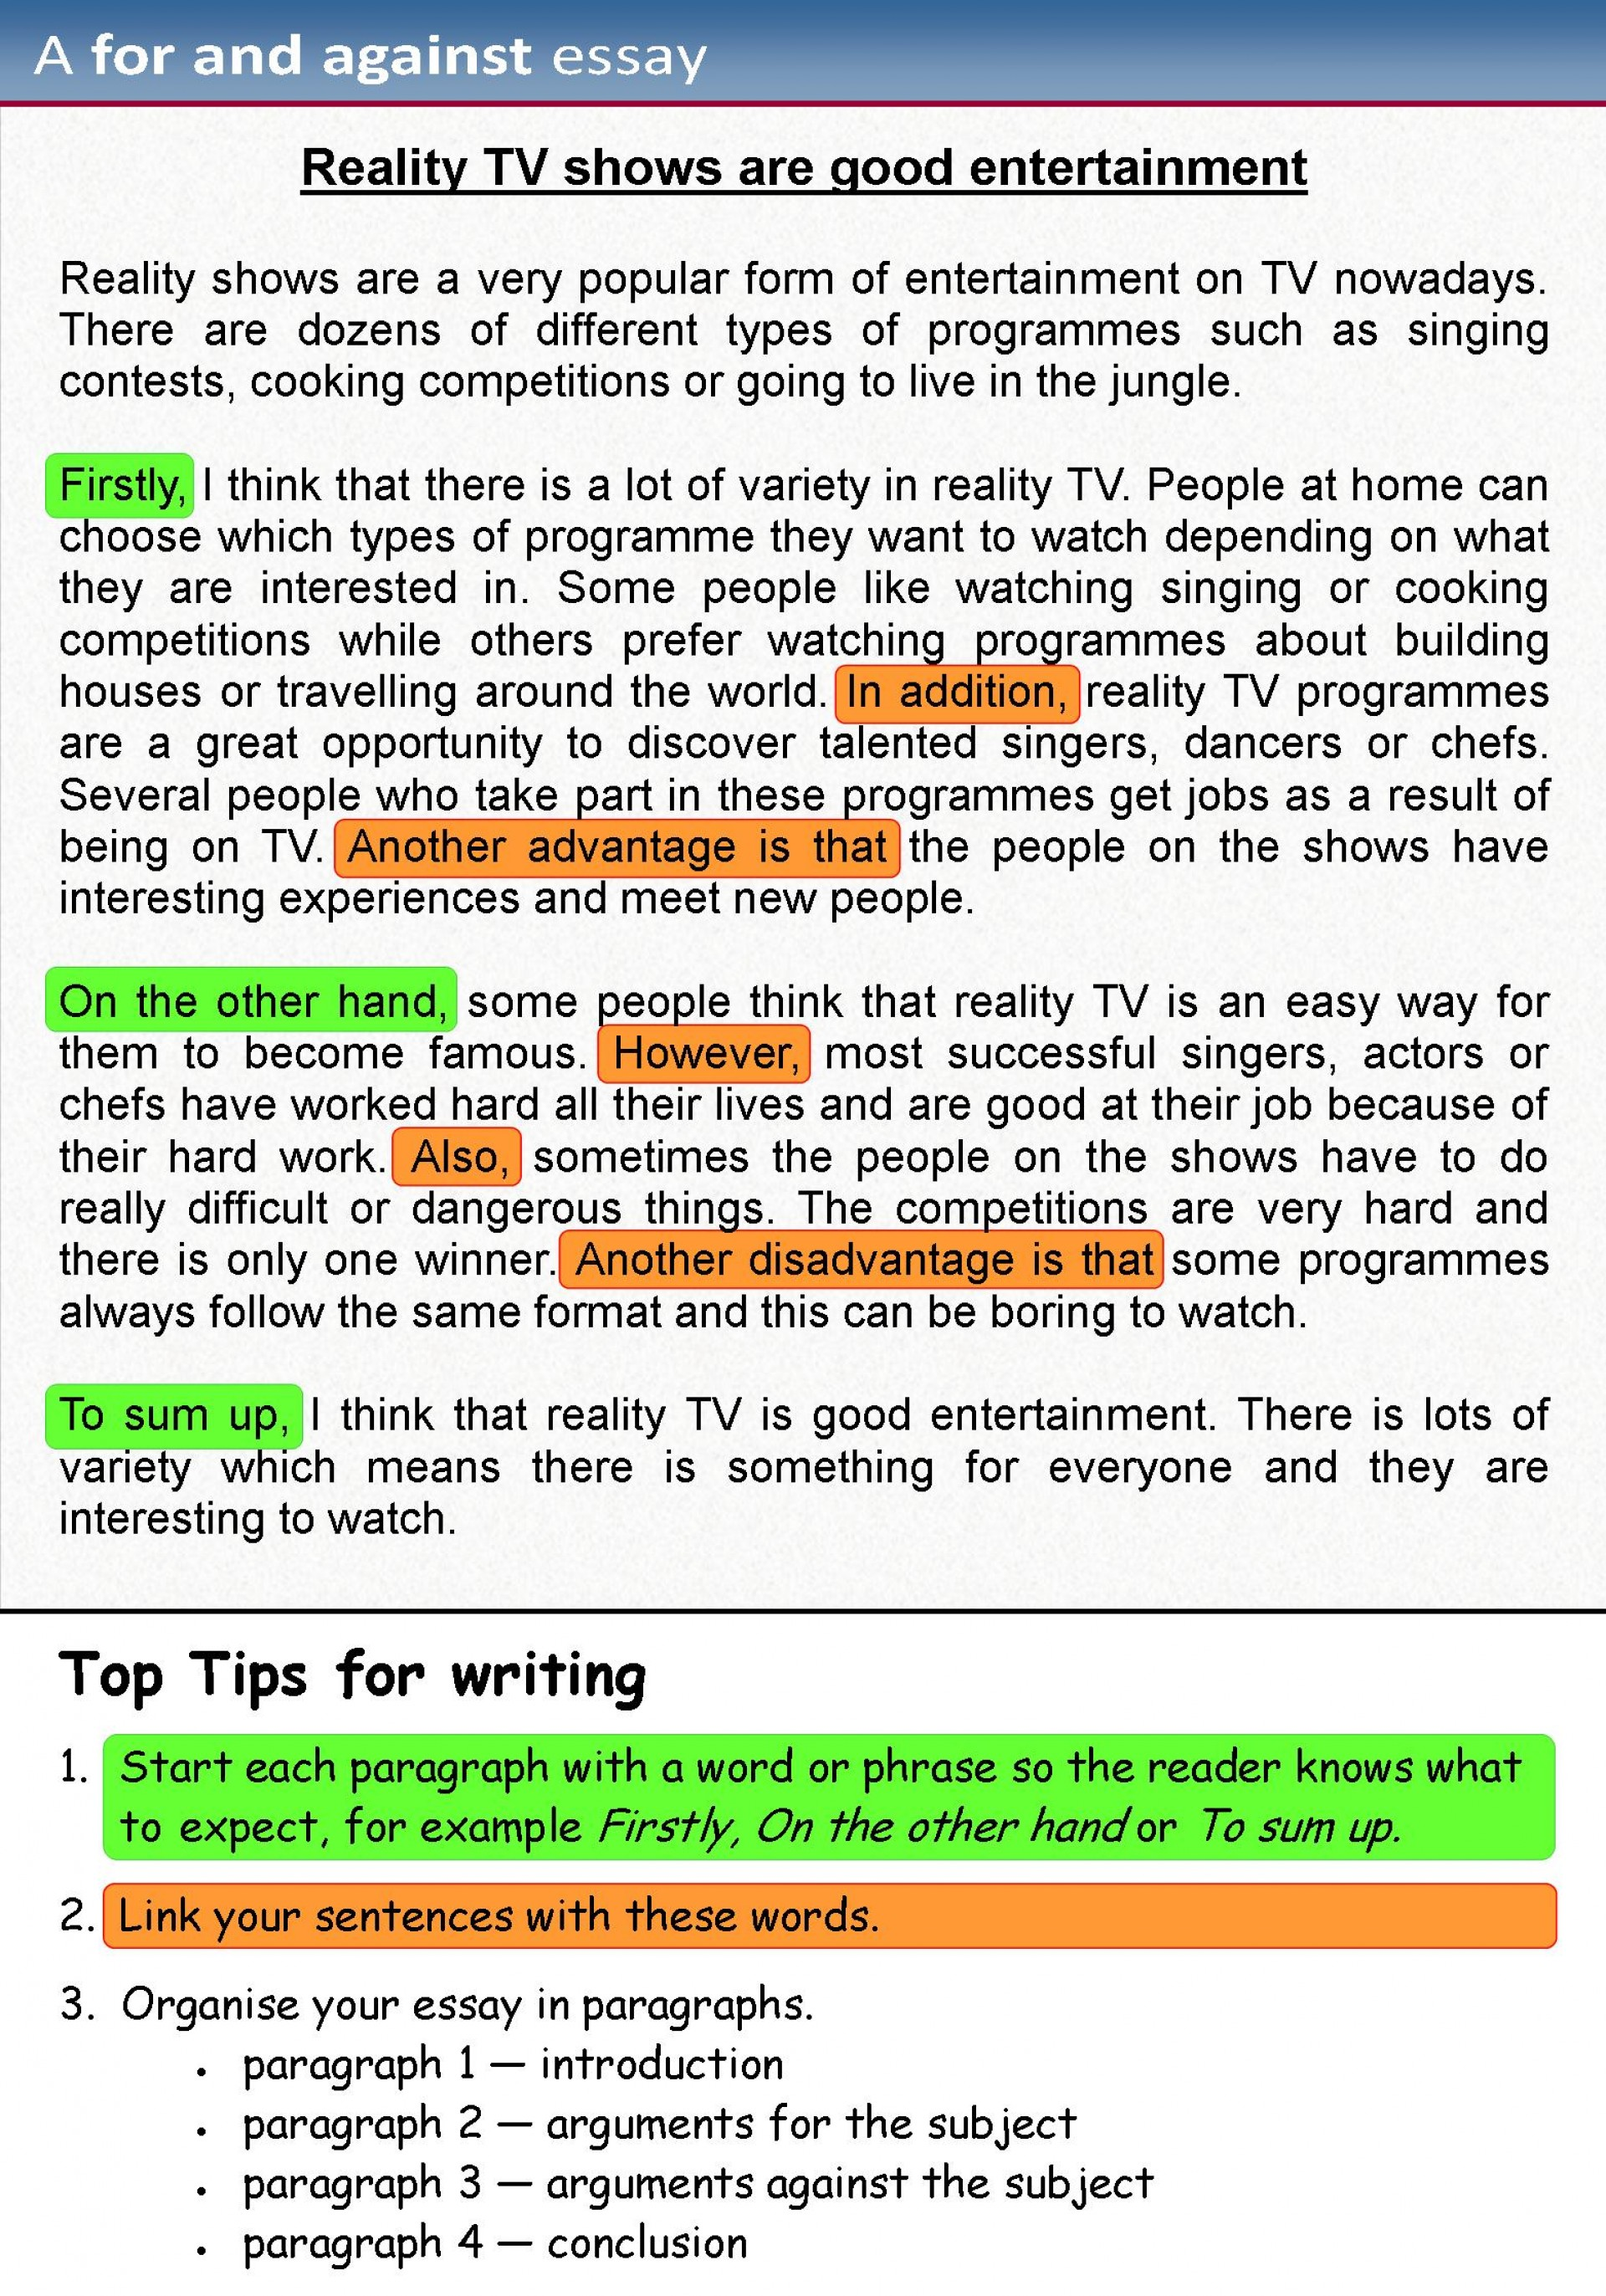 019 Essay Example For Against 1 Words To Start Fantastic An Good Conclusion Paragraph 1920